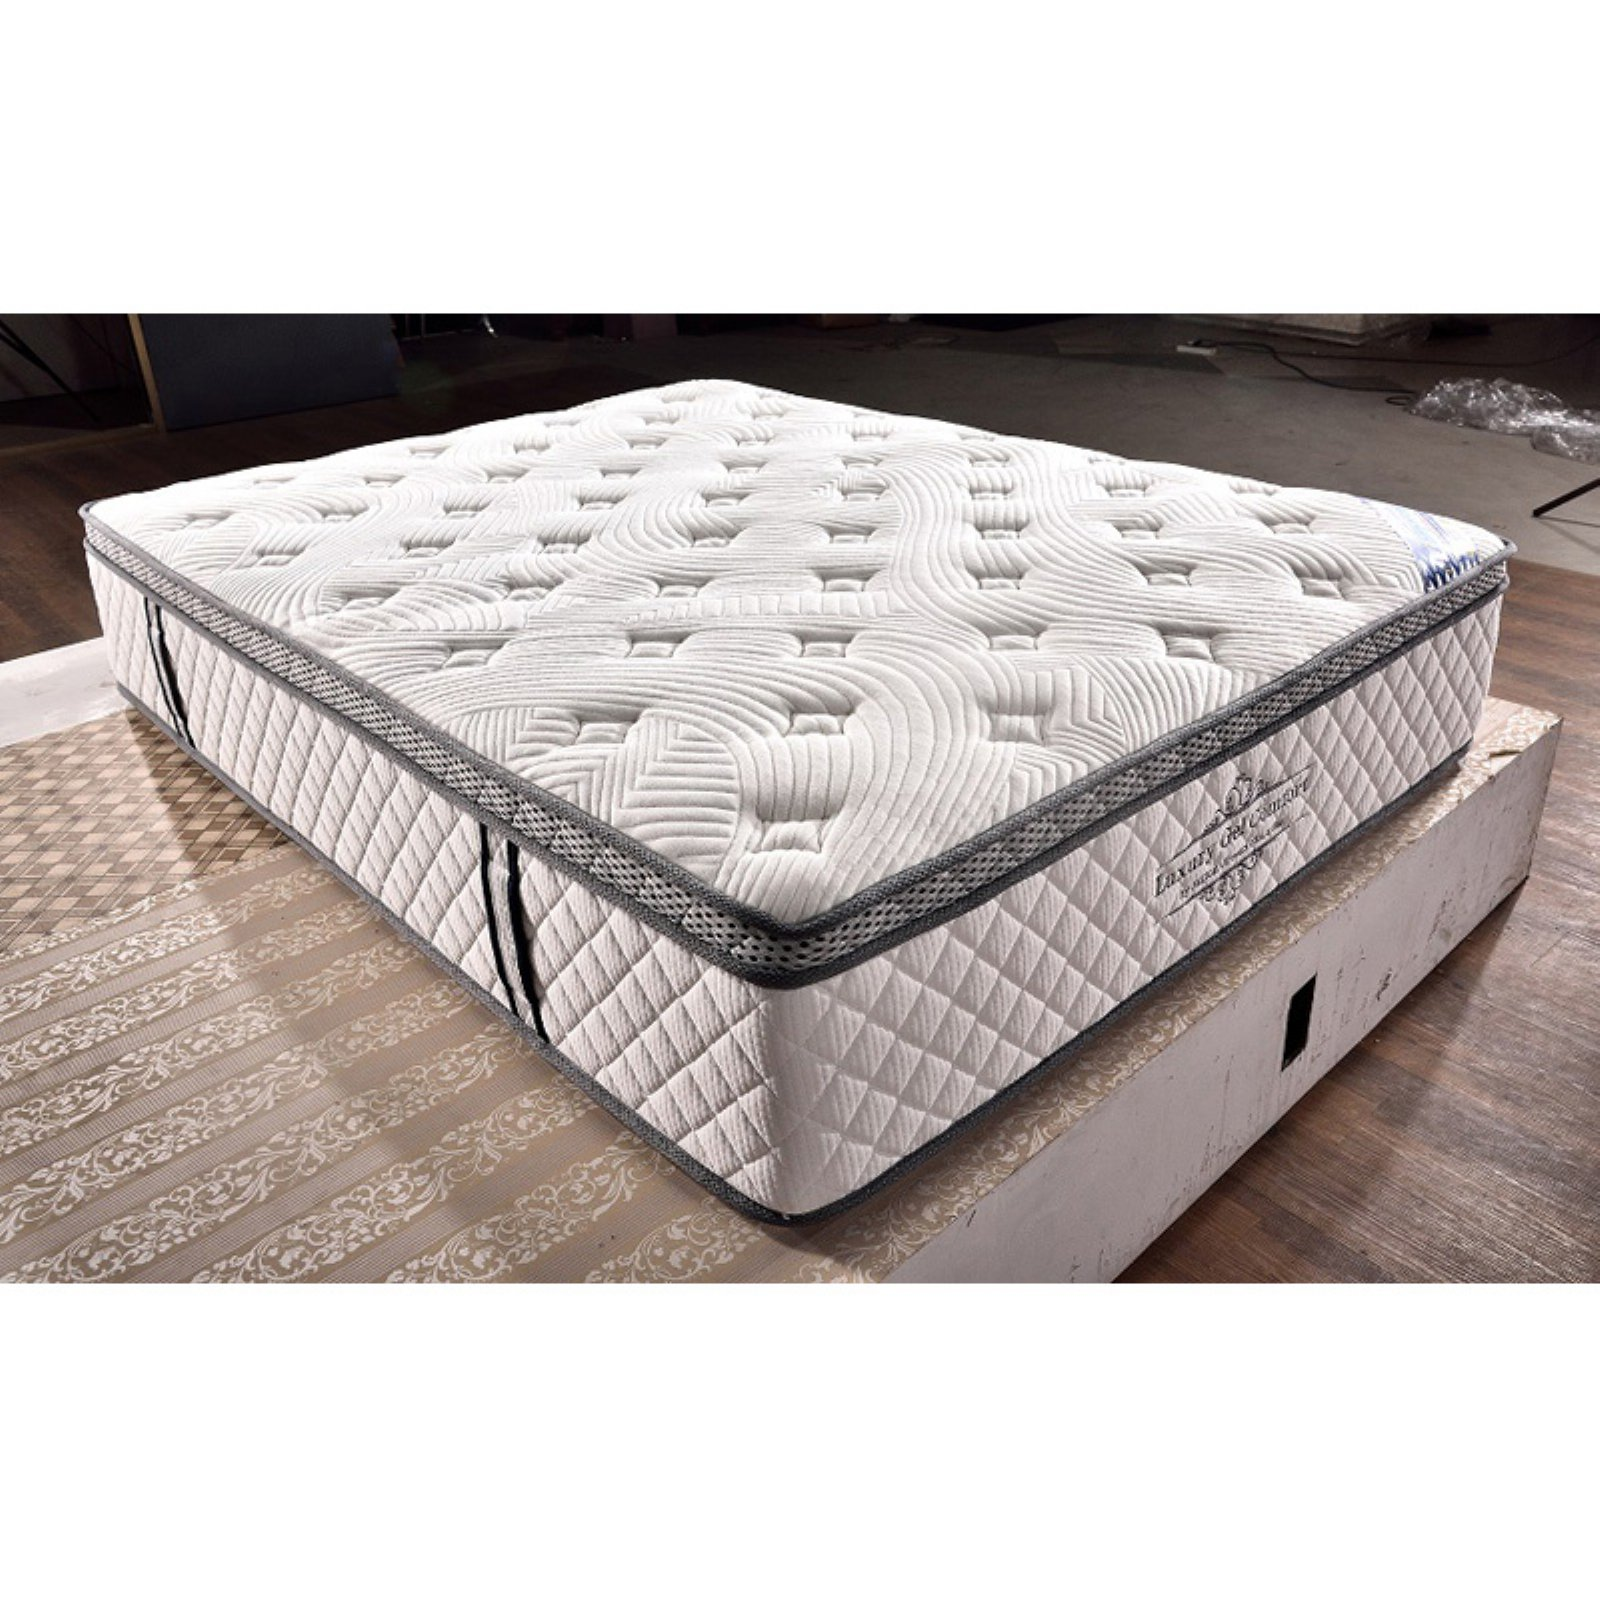 Milton Greens Stars Luxury 15 in. Gel Memory Foam and Pocketed Coil Hybrid Mattress